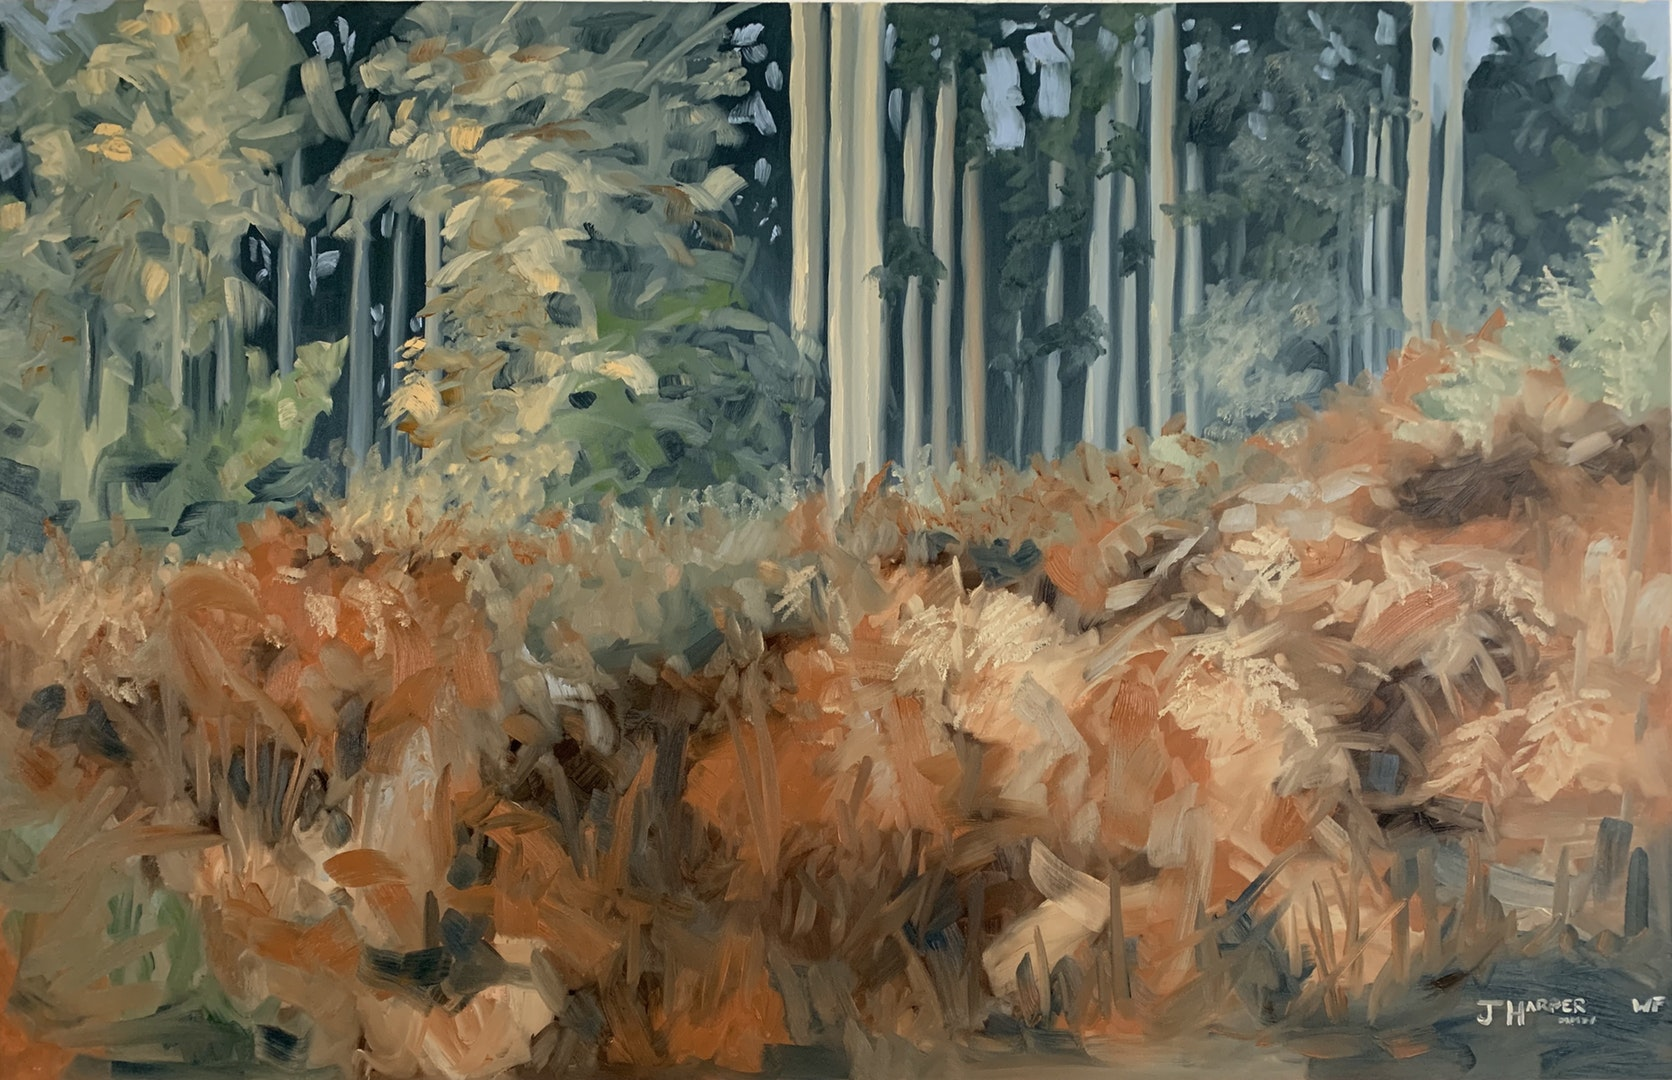 'Autumn Firs & Ferns II', Joseph Harper, Oil on canvas, 150 x 100 cm